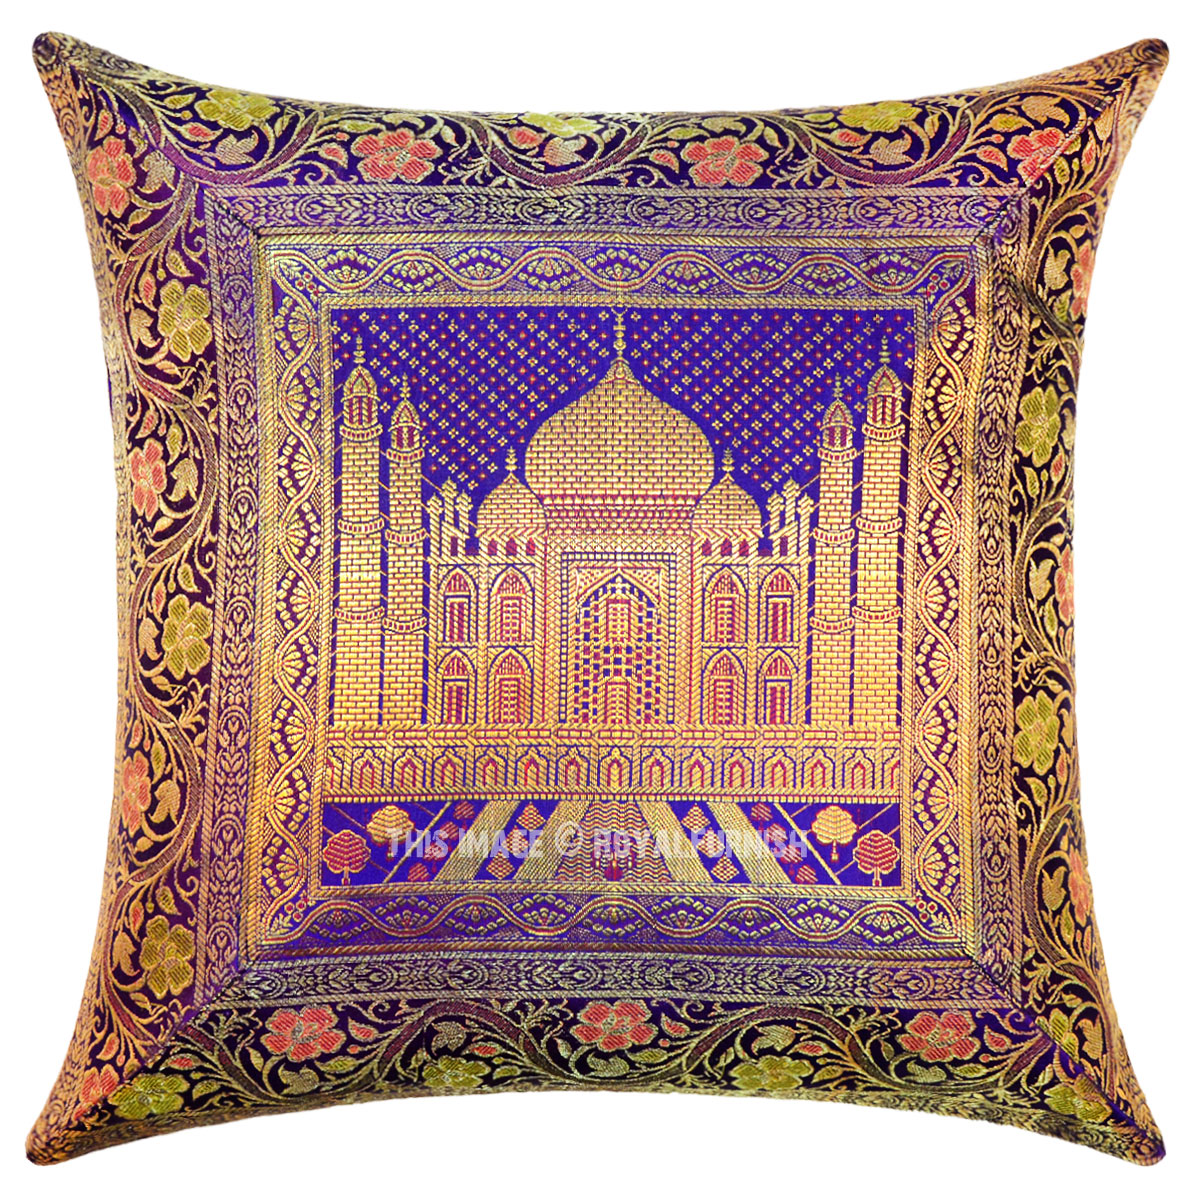 Purple Silk Throw Pillows : Purple Color Decorative Tajmahal Silk Brocade Throw Pillow Cover 16X16 - RoyalFurnish.com